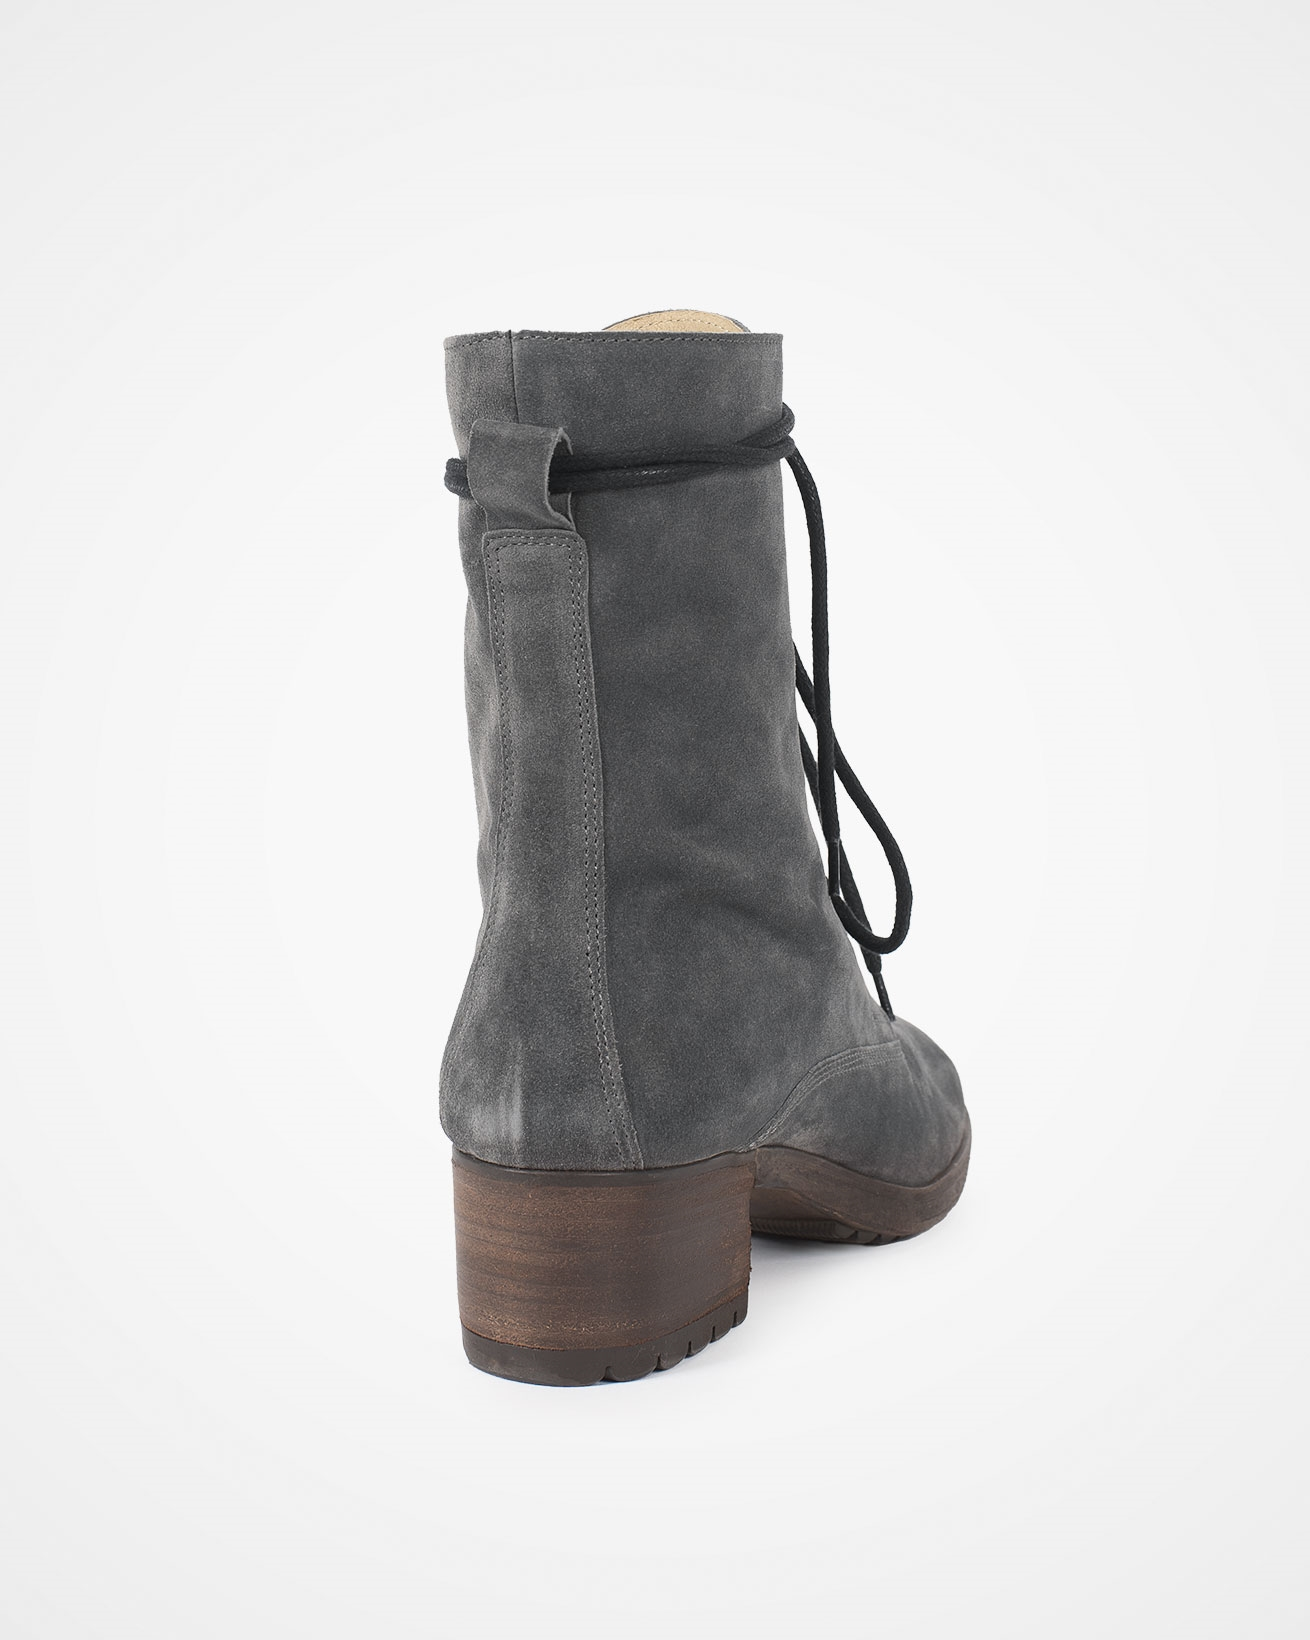 7794_block-heel-lace-up-ankle-boots_smoke-grey_back.jpg